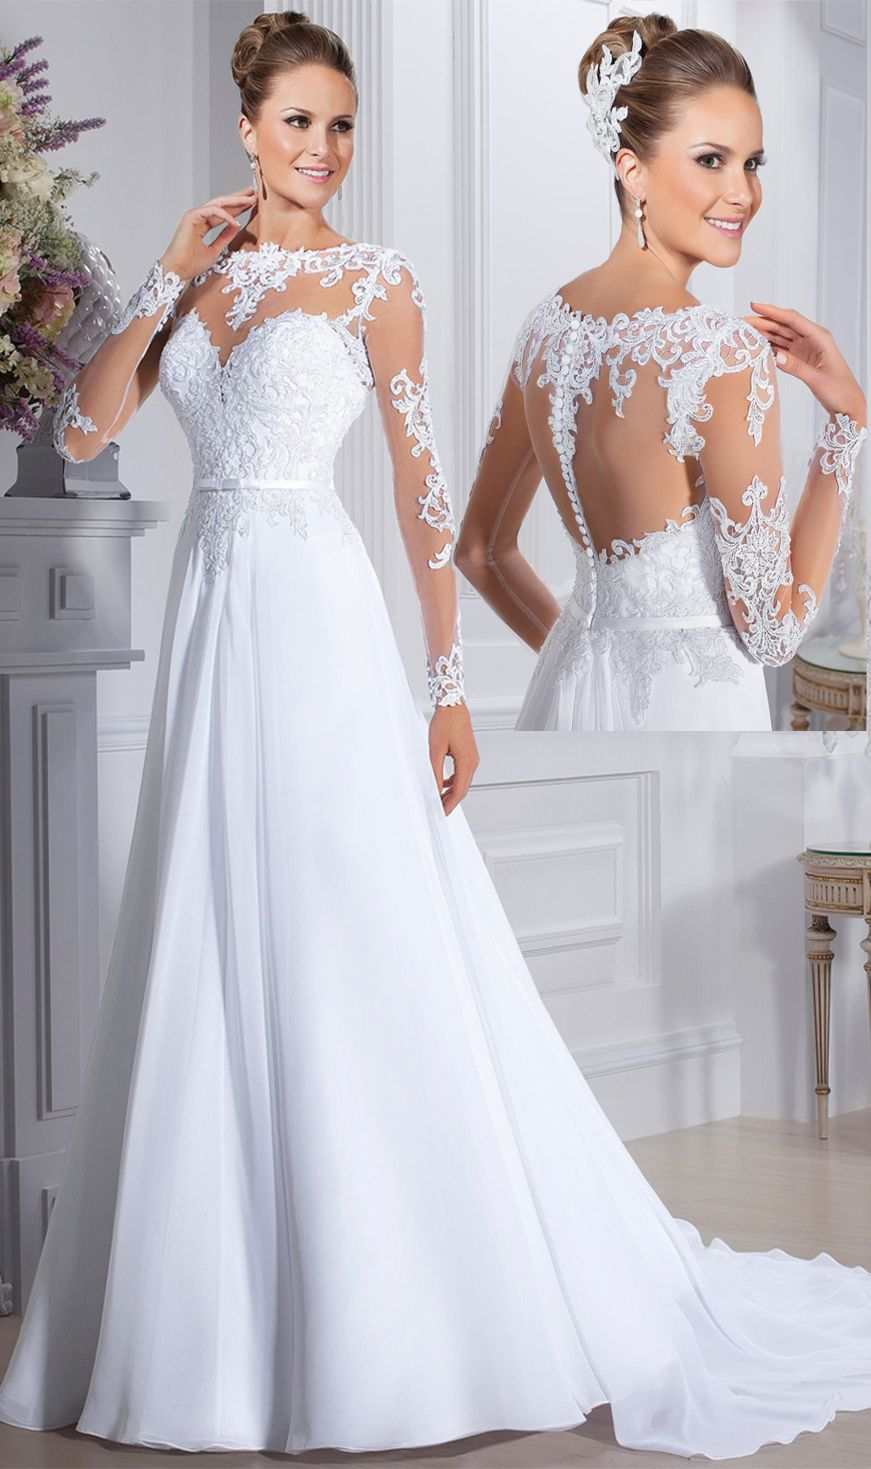 Wedding dresses with long sleeves   A Line Scoop Wedding Dresses Long Sleeves Chiffon With Applique